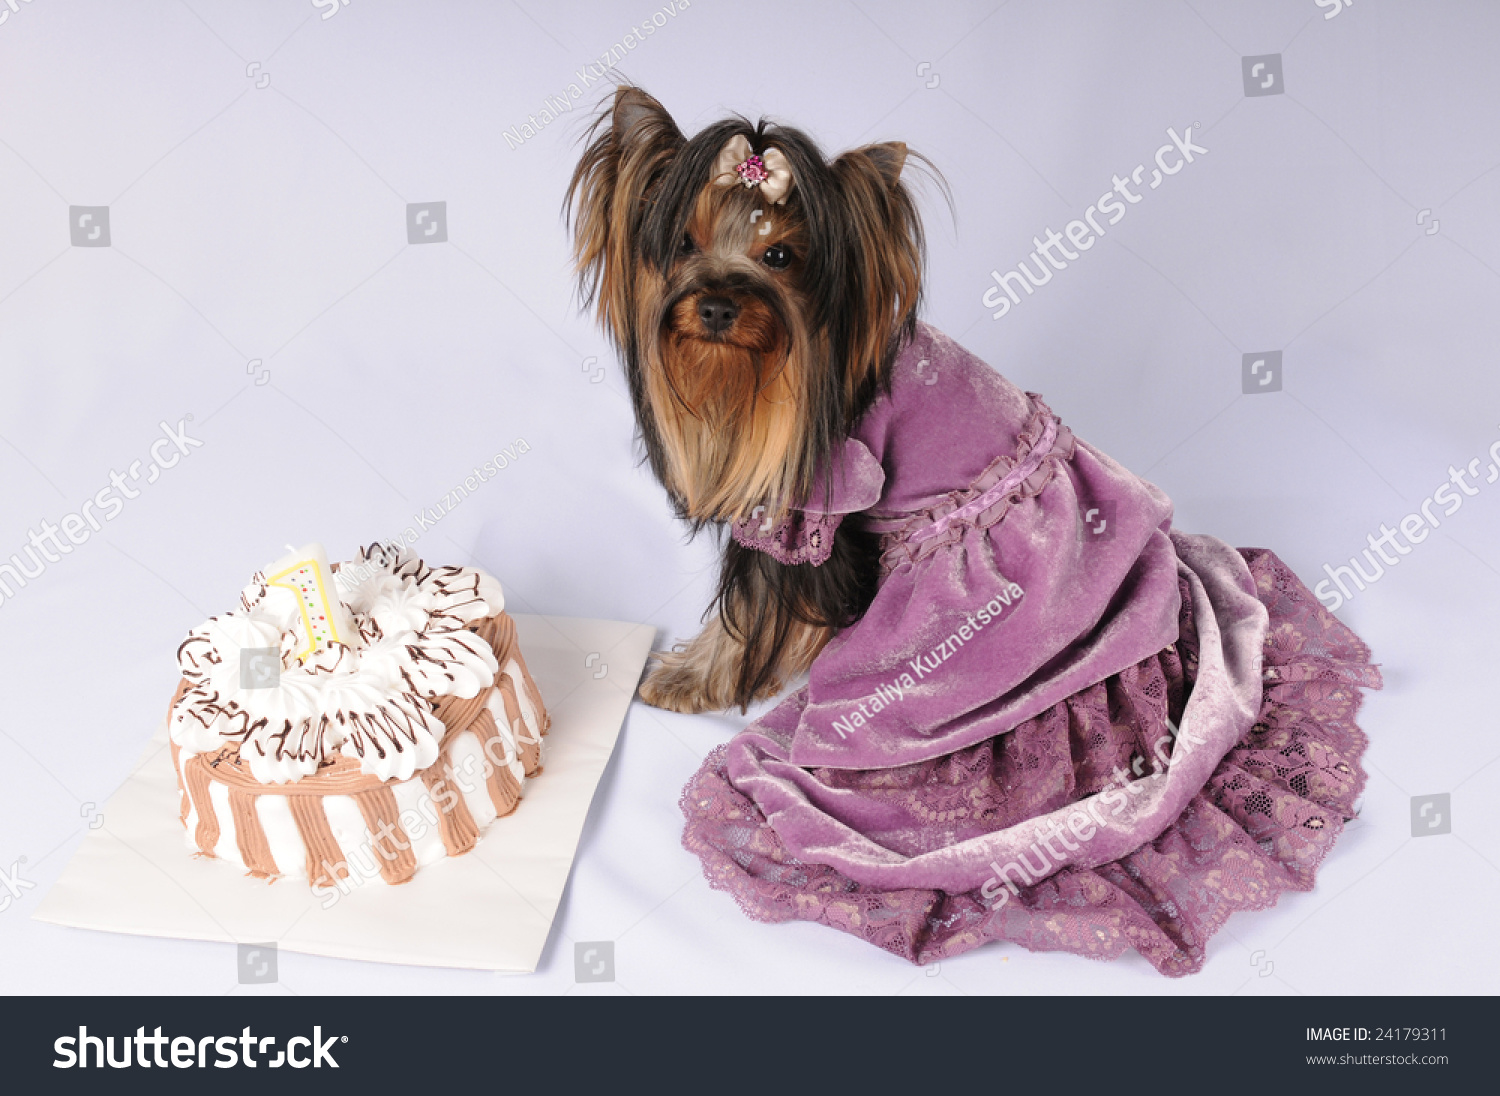 Toy Dog Purple Dress Birthday Cake Stock Photo Edit Now 24179311